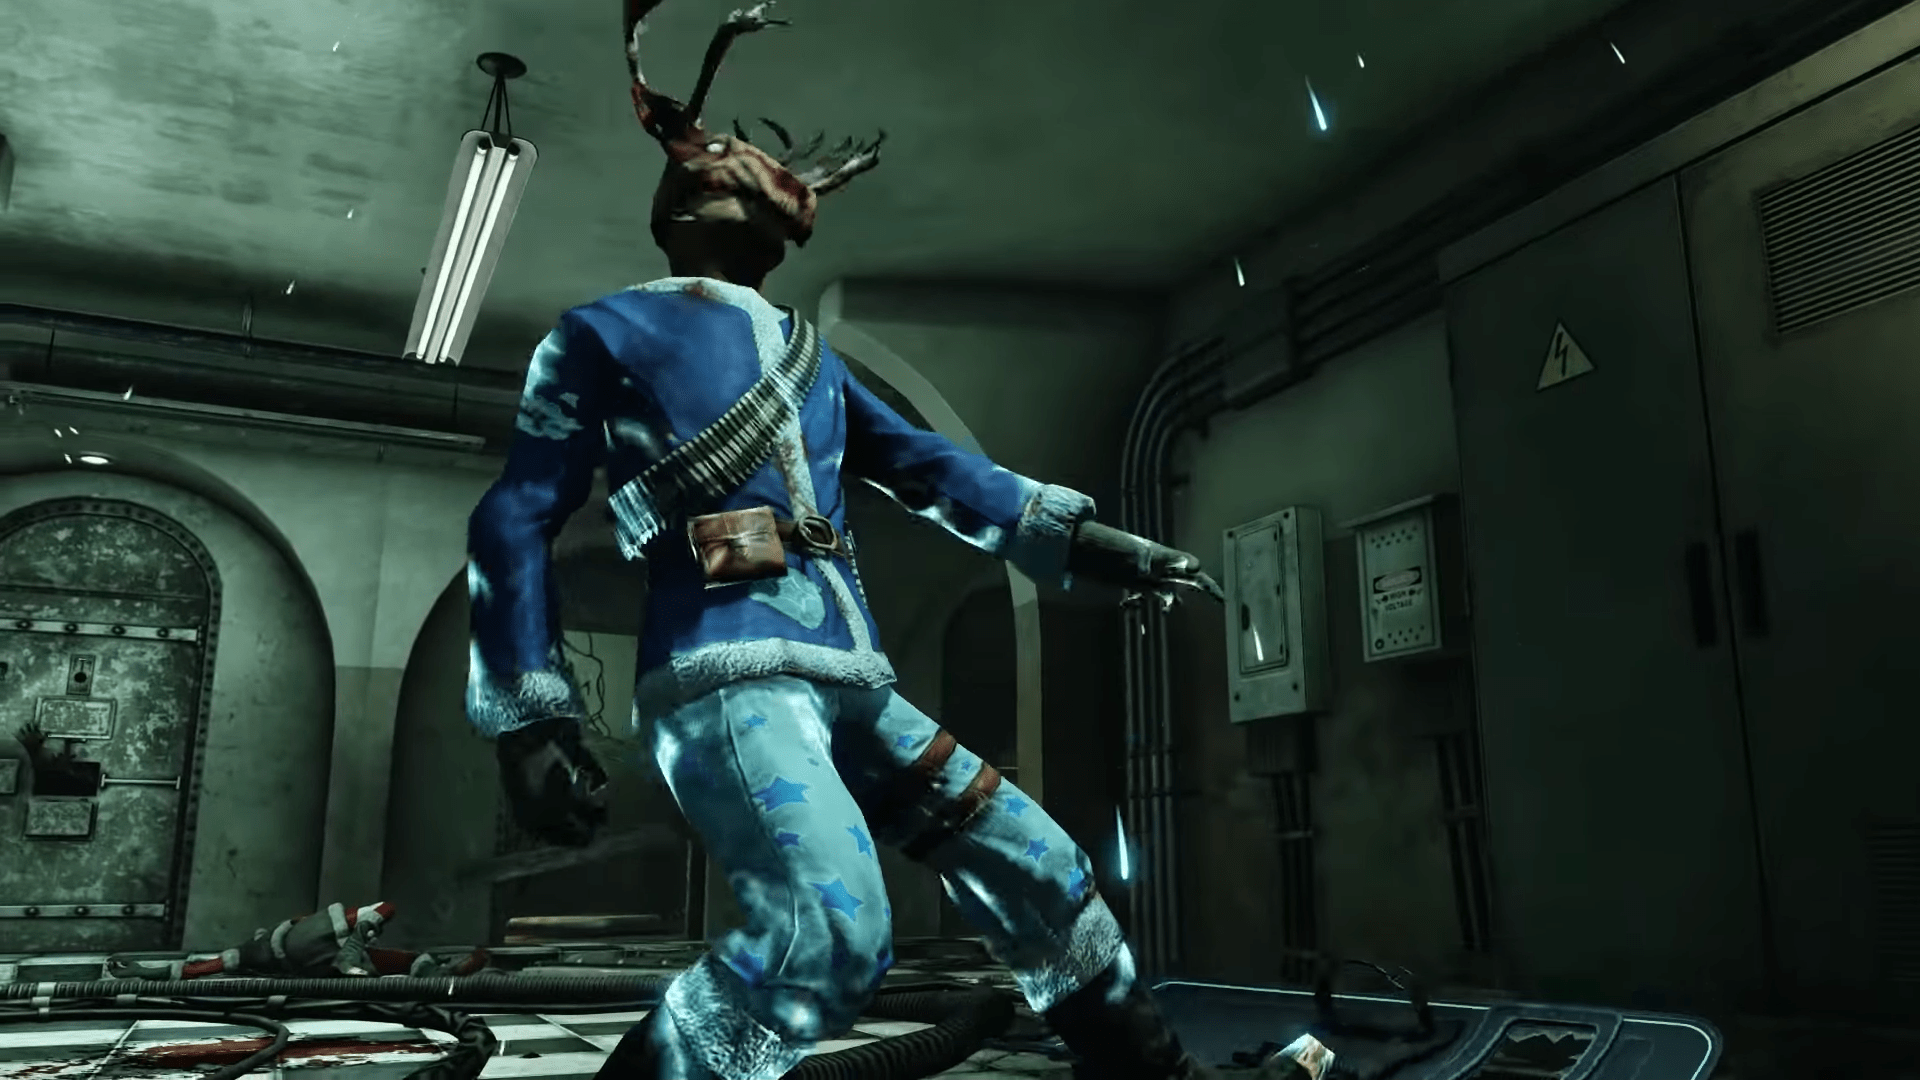 Yuletide Horror Comes To Killing Floor 2 On Steam, With A Surprising Amount Of New Content